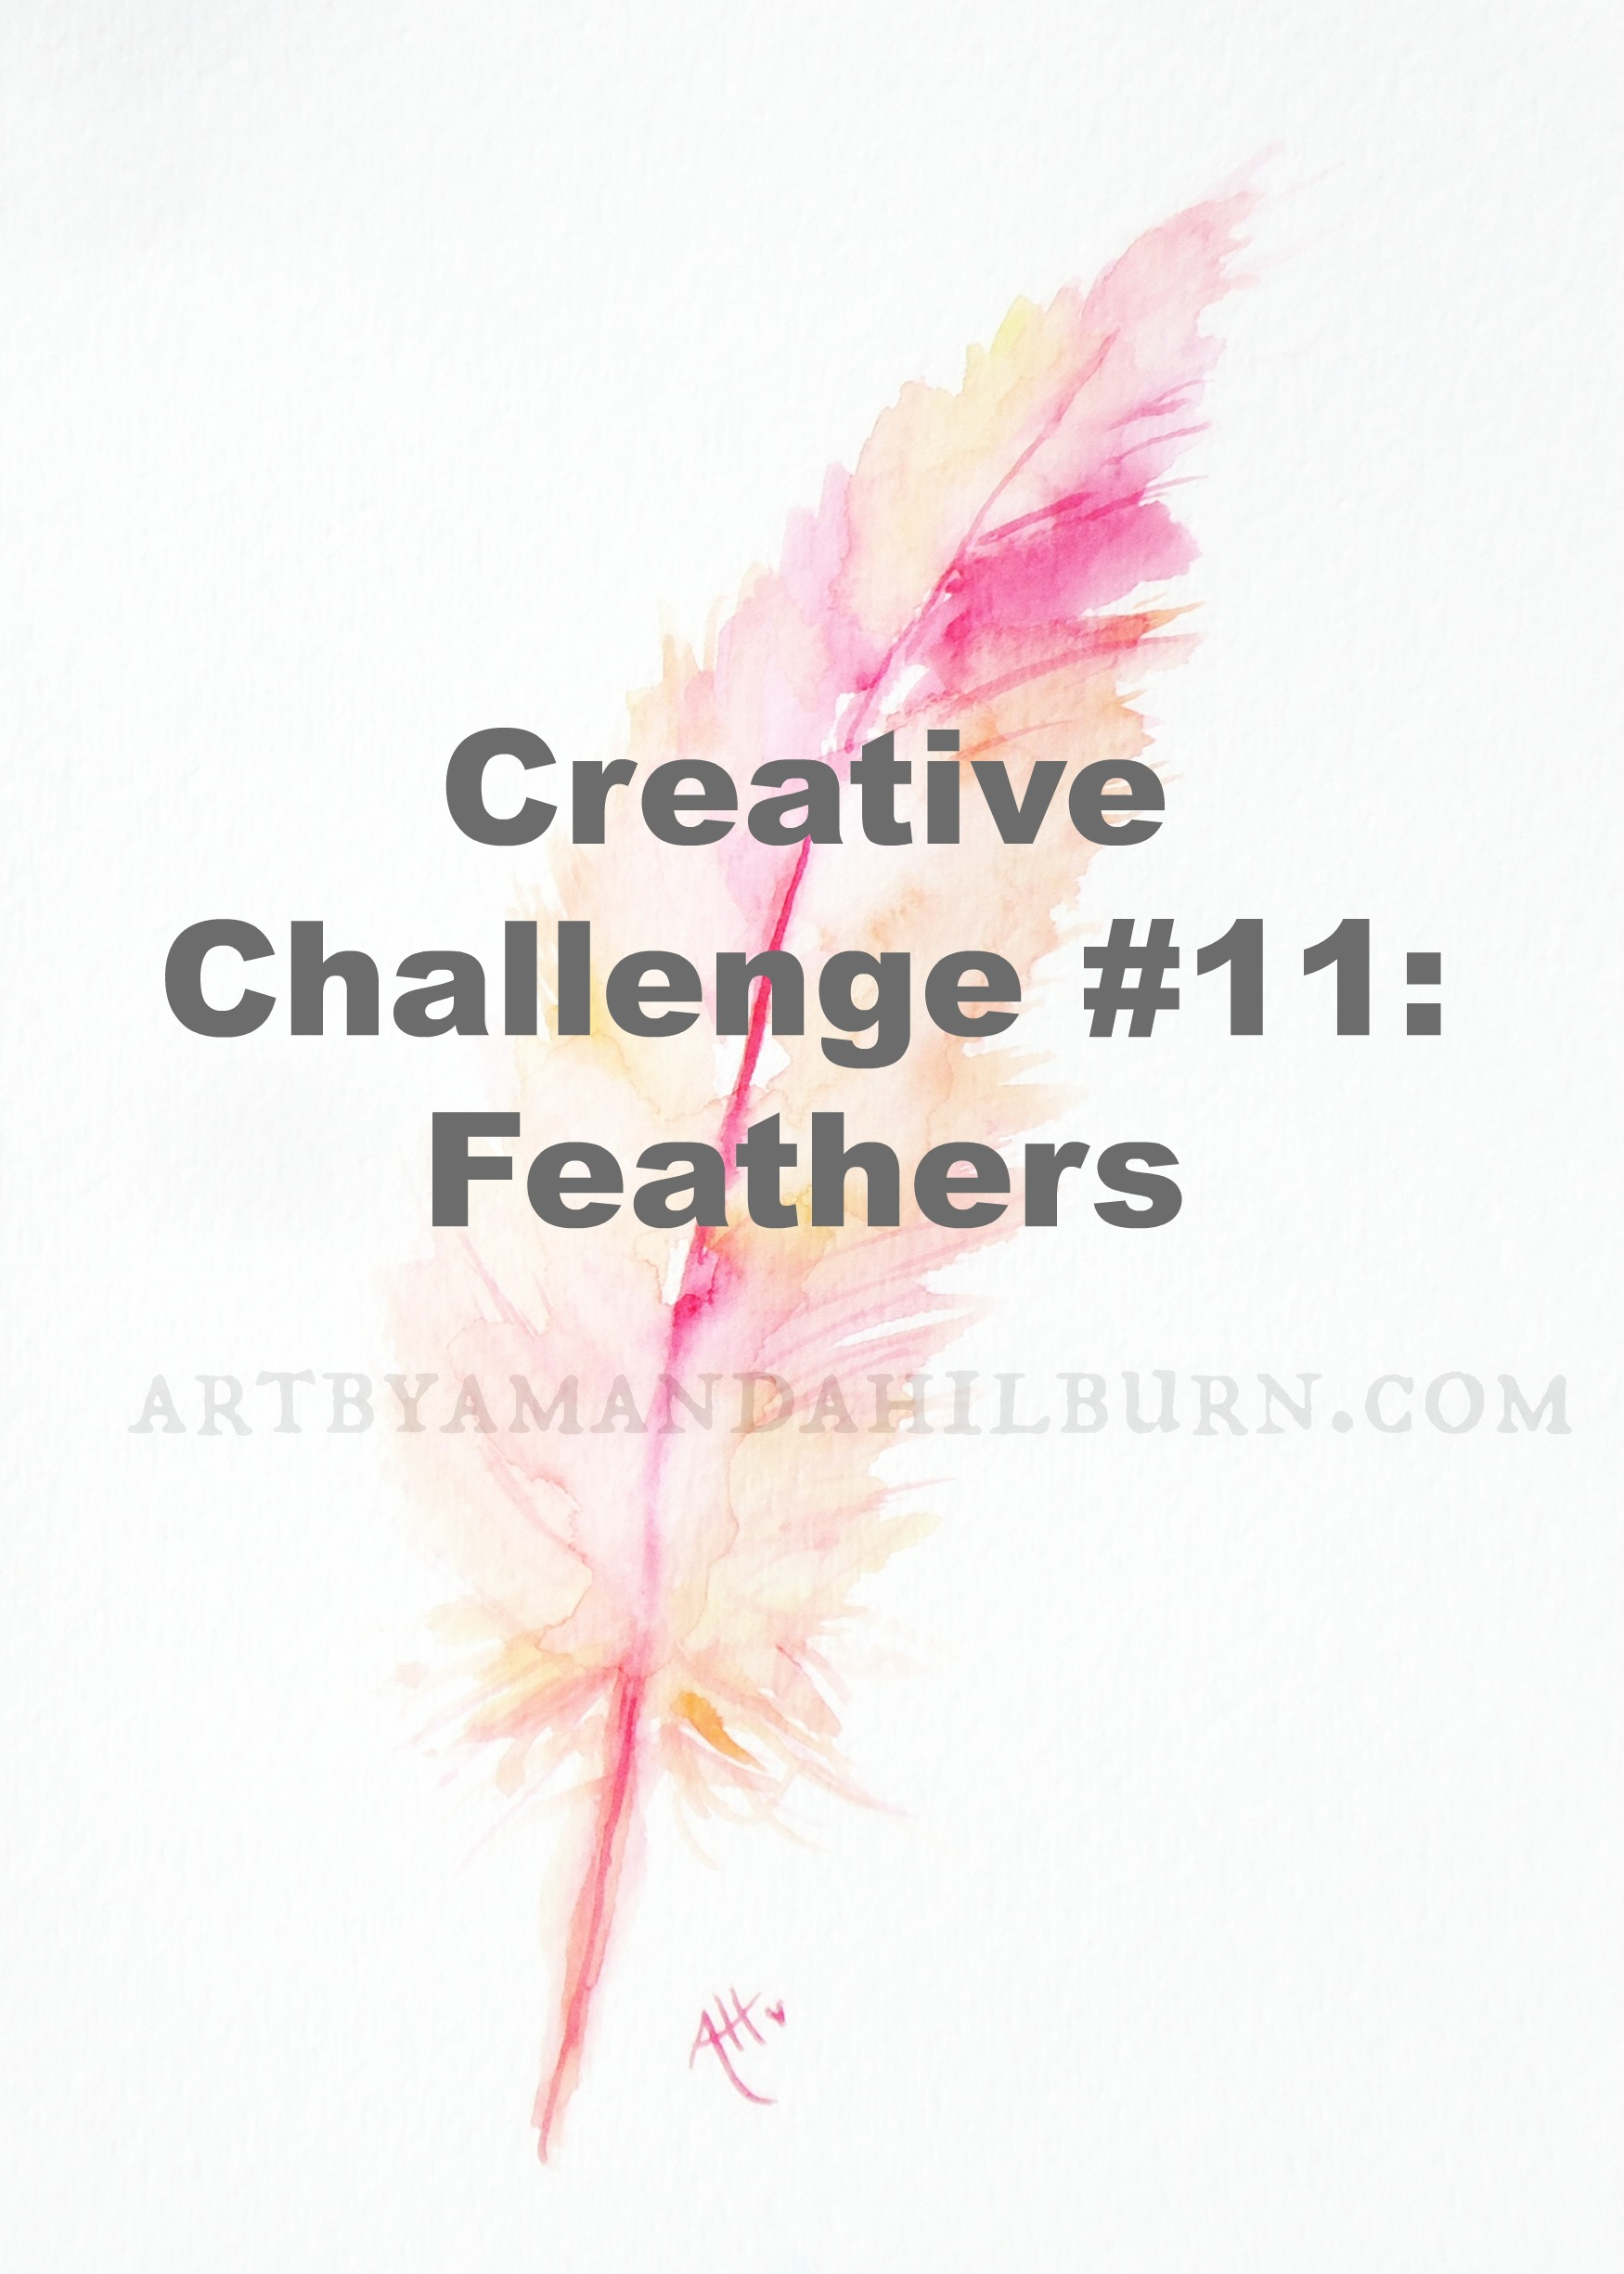 Creative Challenge #11: Feathers